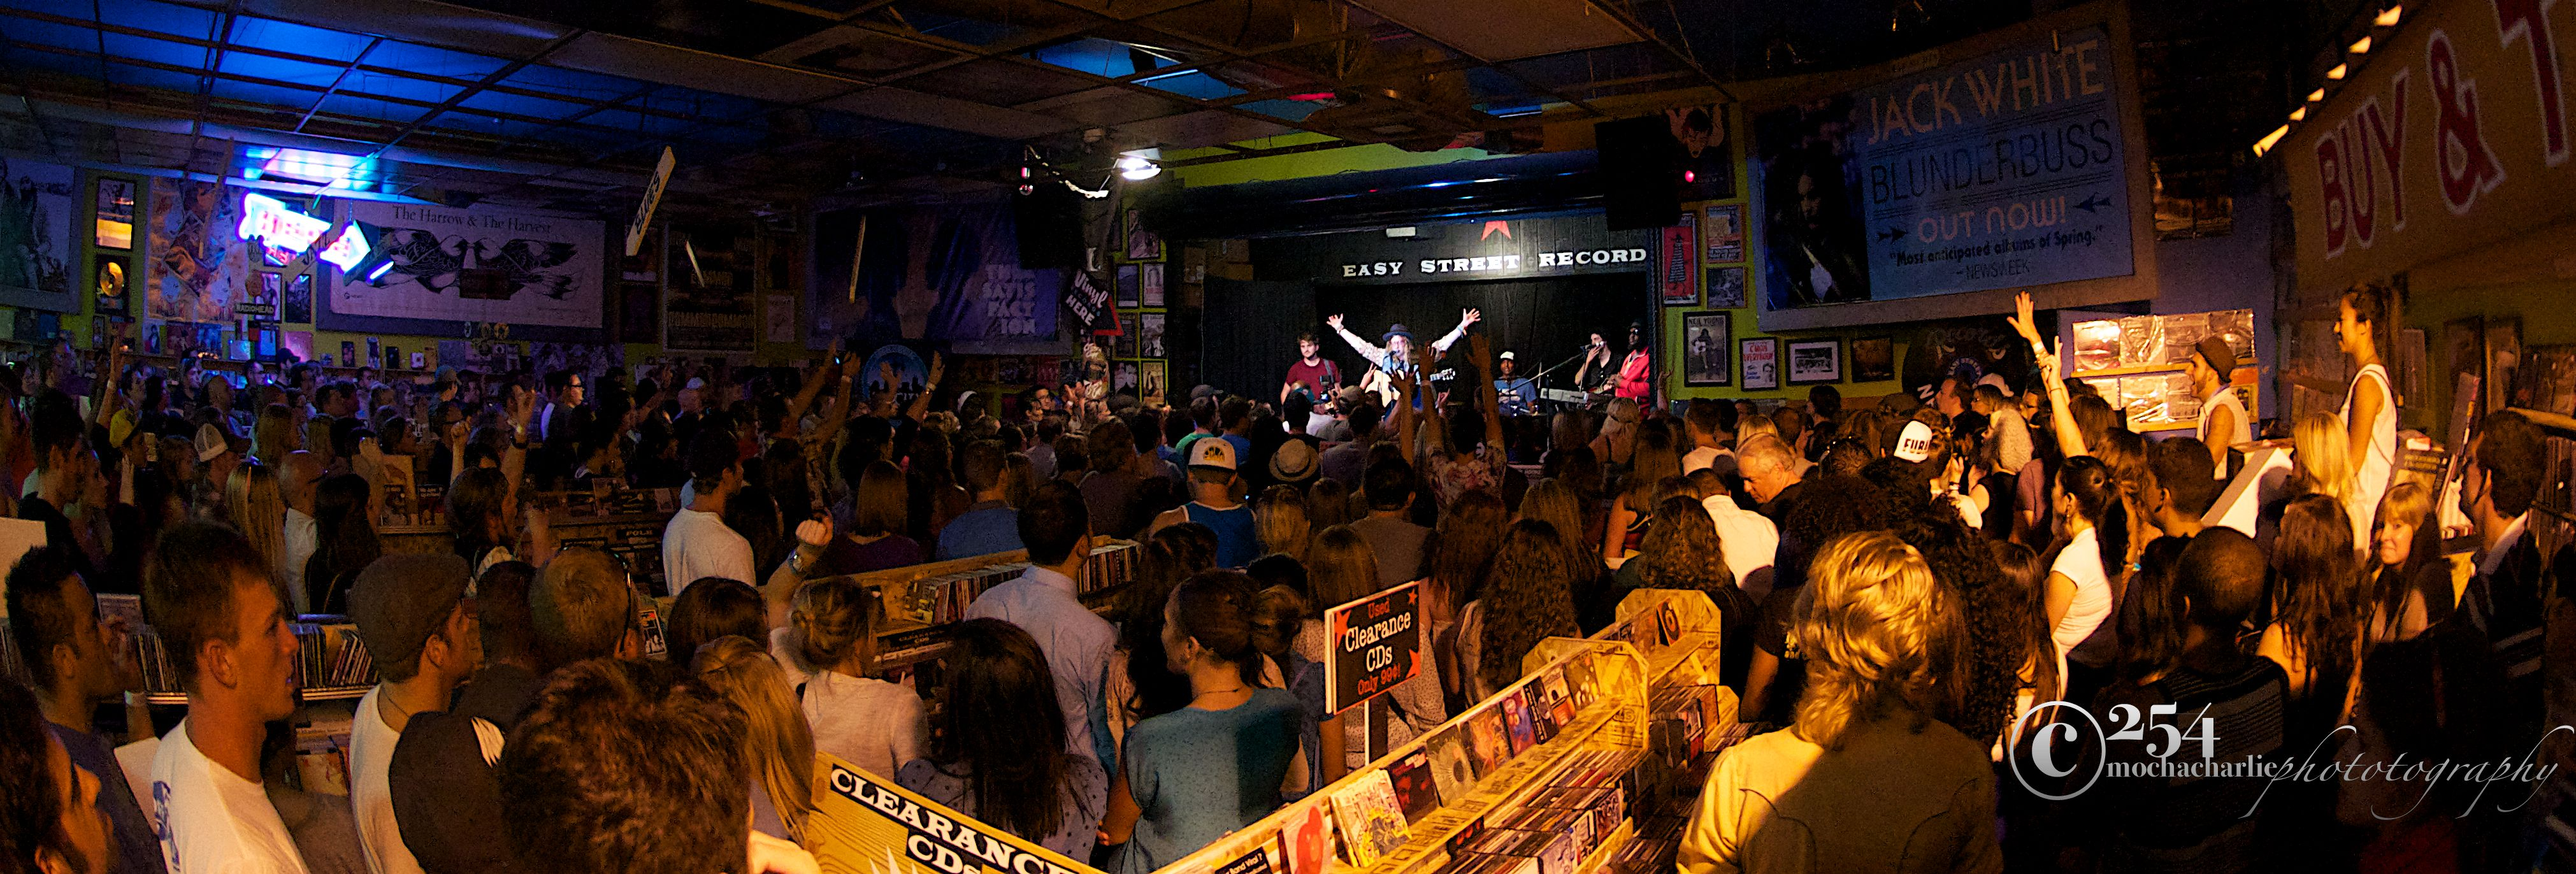 Allen Stone @ Easy Street Records on 8/22/12 (Photo By Mocha Charlie)